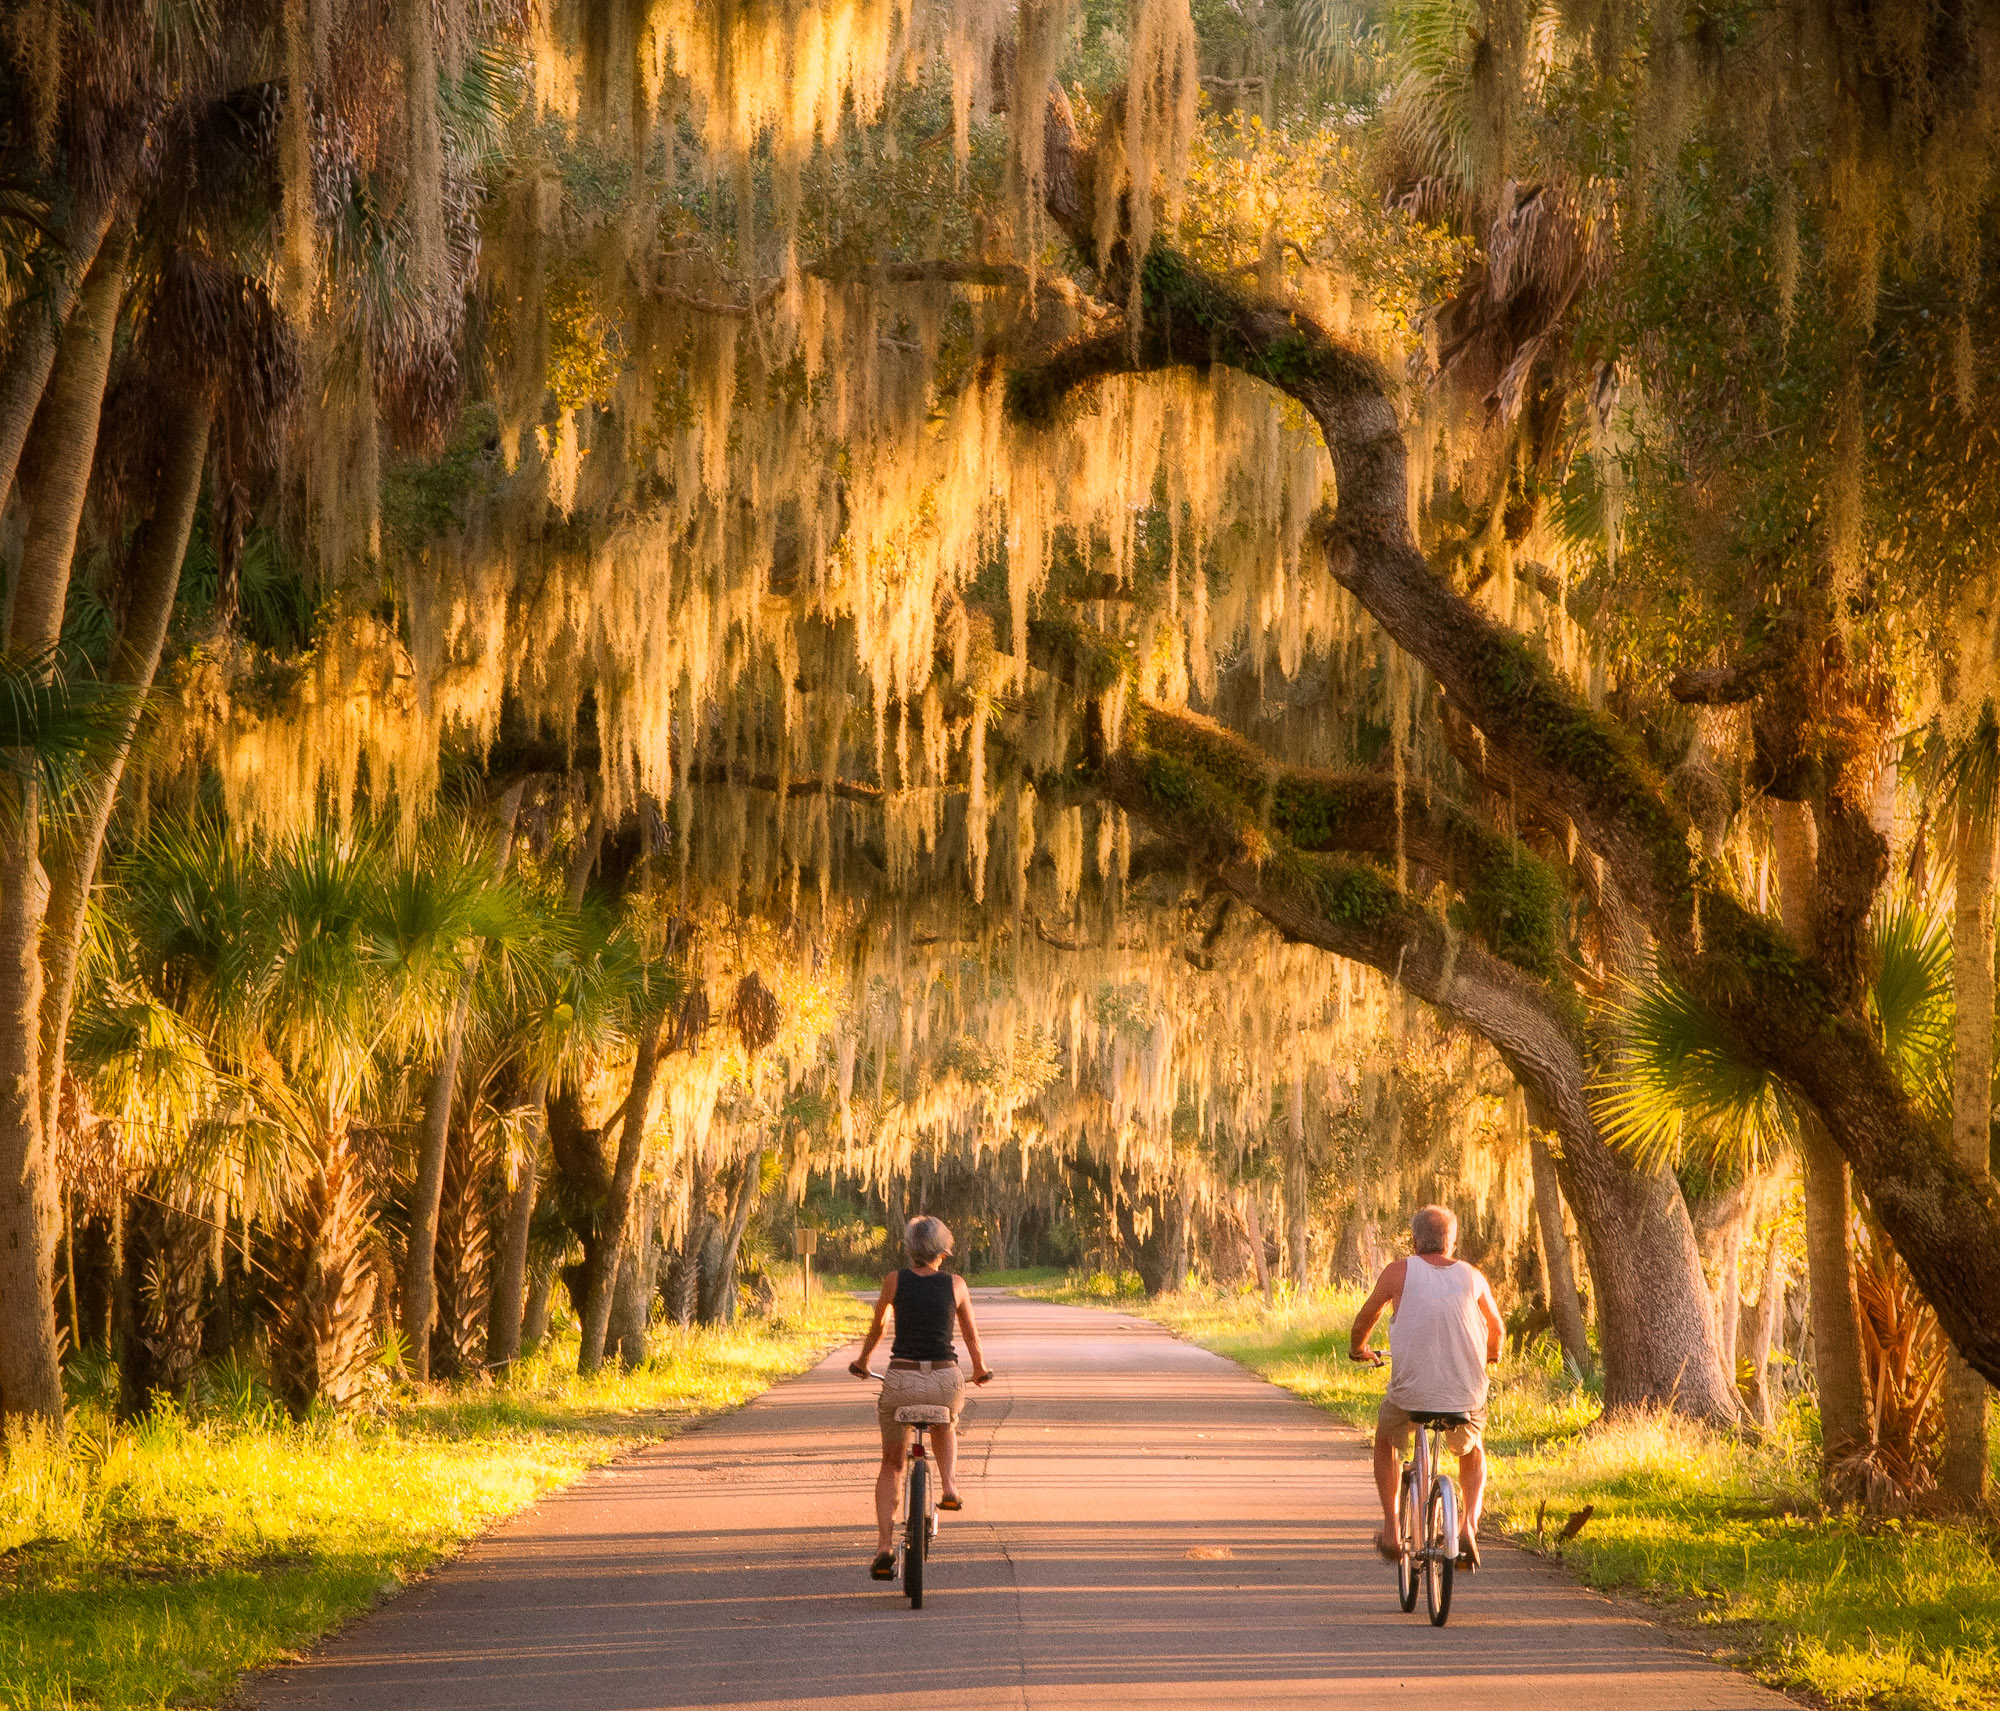 Couple on bicycles - Myakka River State Park, Florida